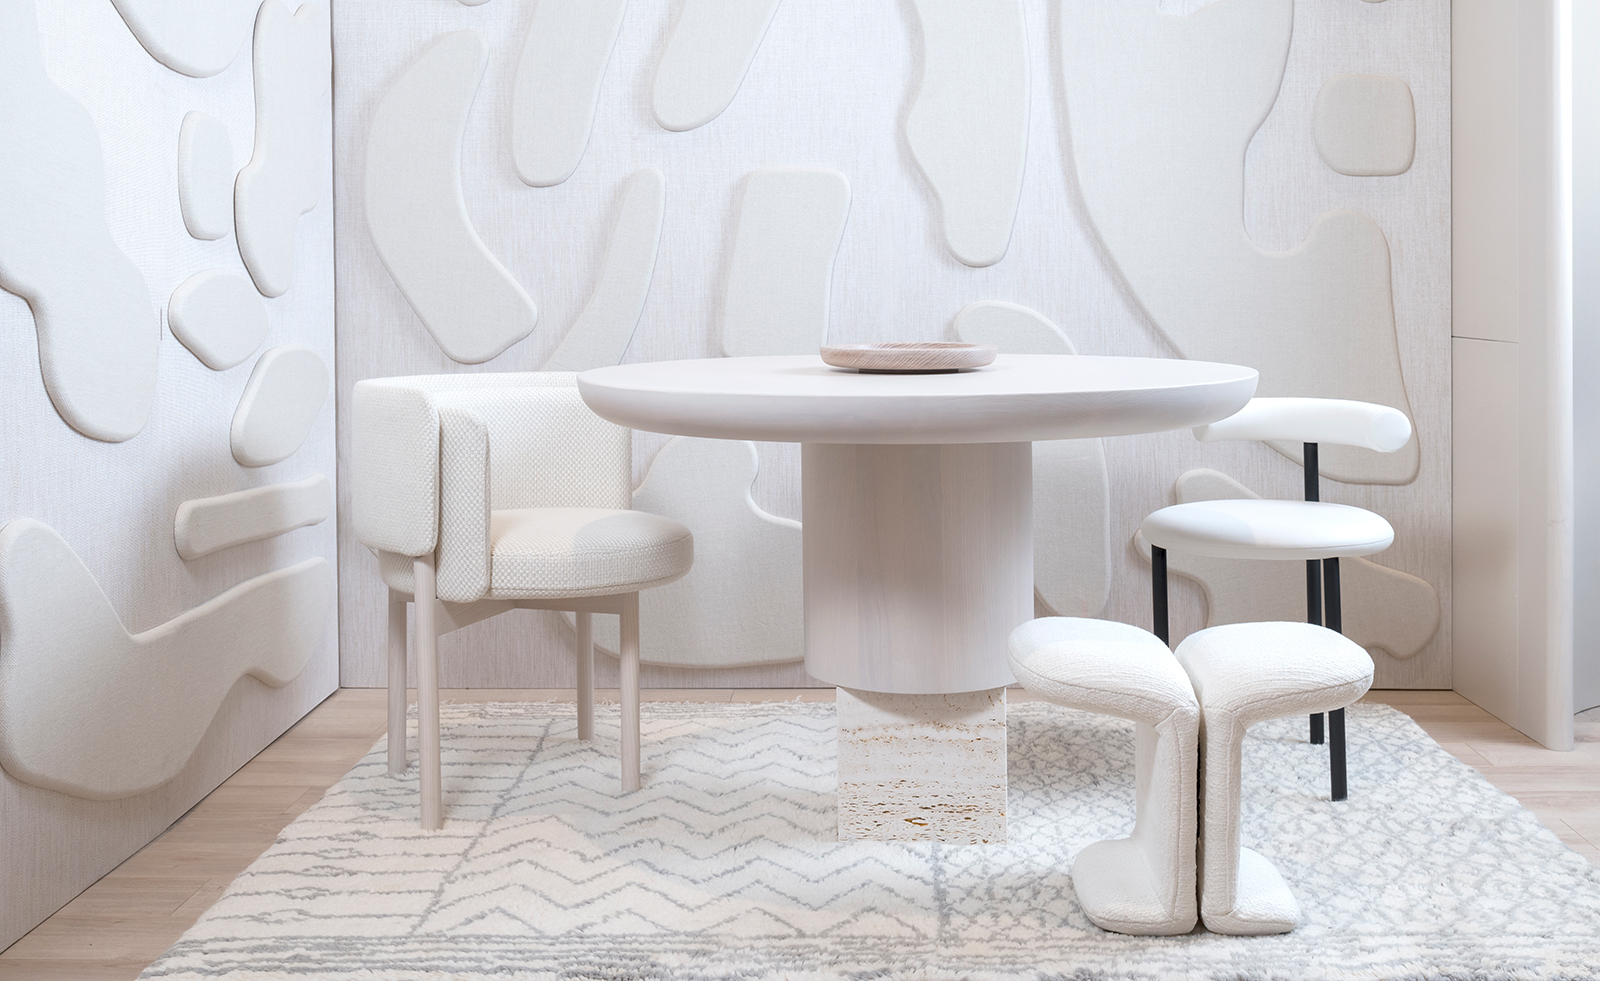 Paolo Ferrari Taps Fluid Forms In New Furniture Collection Wallpaper